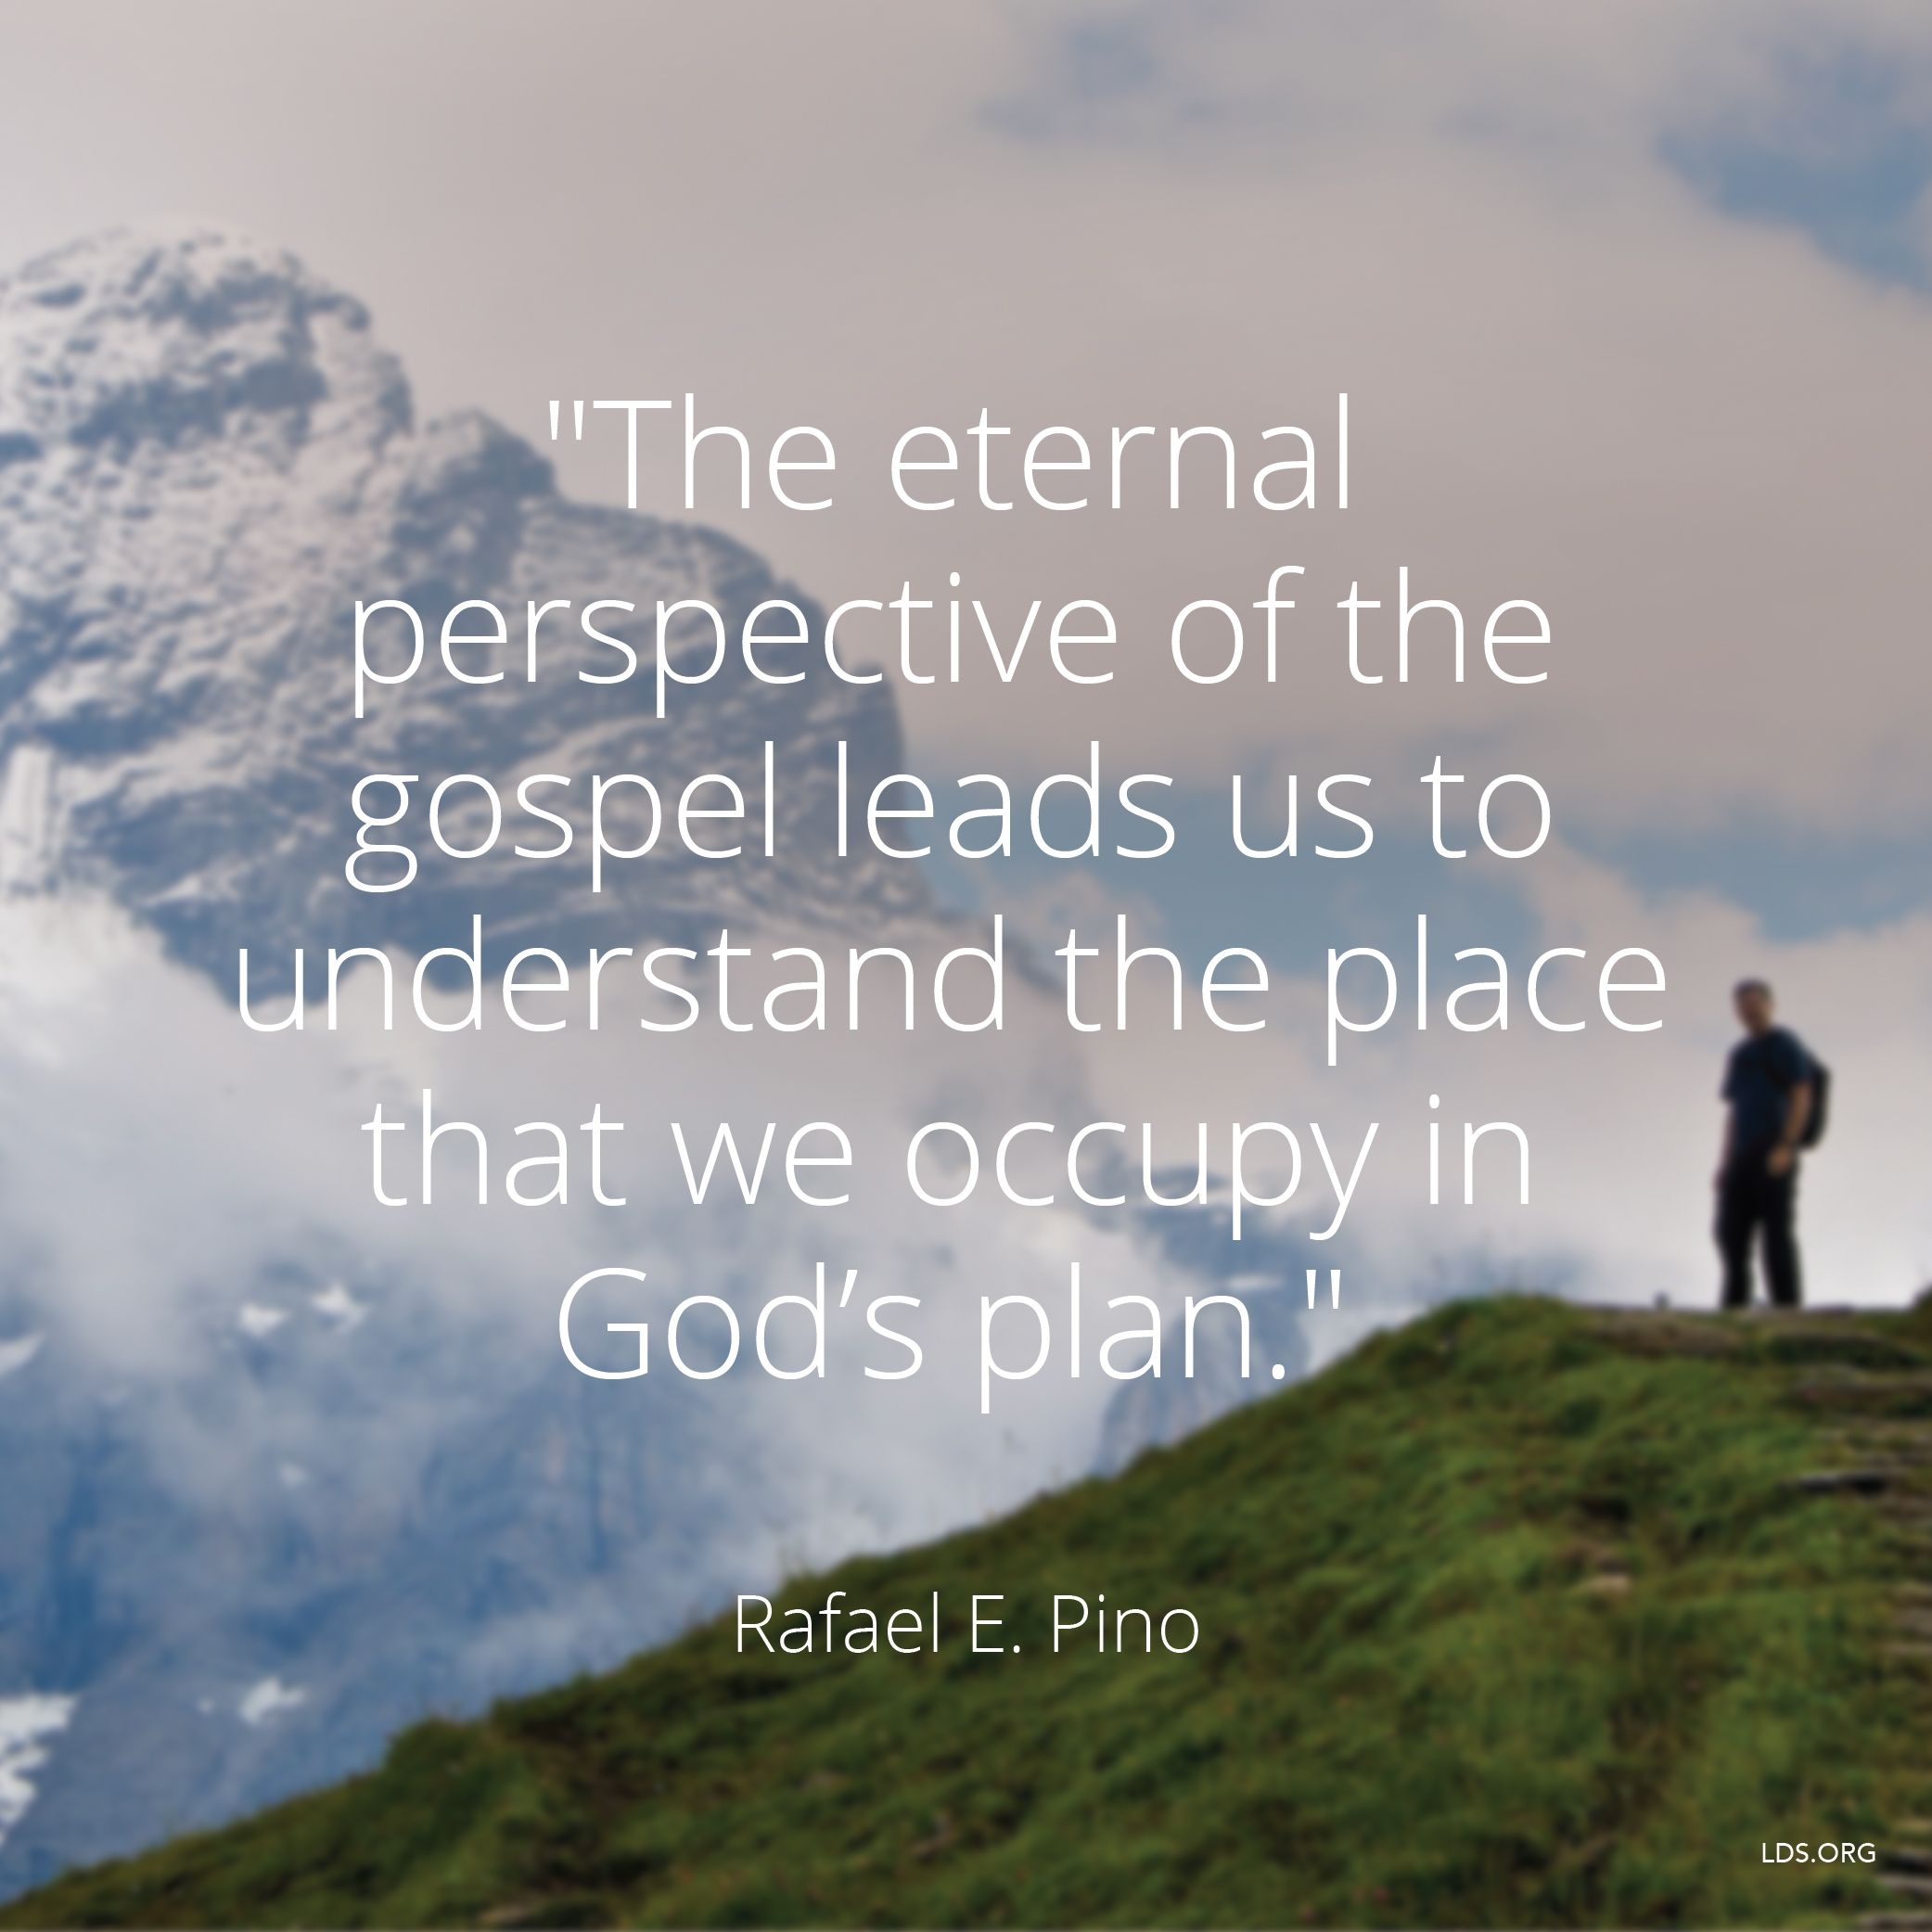 """""""The eternal perspective of the gospel leads us to understand the place that we occupy in God's plan.""""—Elder Rafael E. Pino, """"The Eternal Perspective of the Gospel"""""""